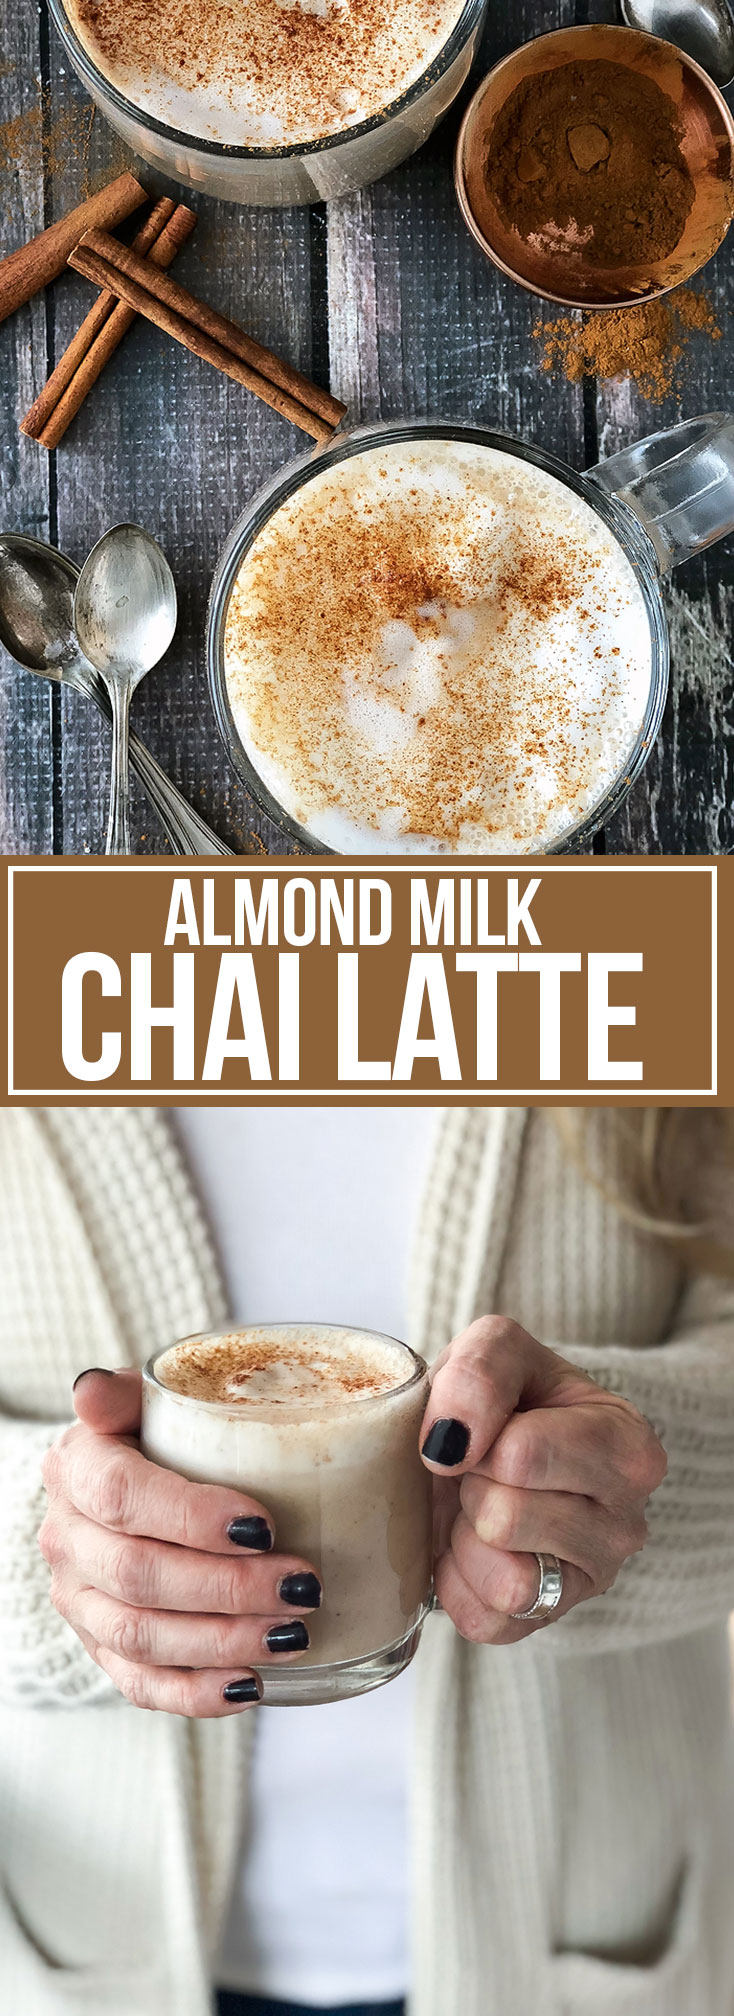 Almond Milk Chai Latte Recipe Almond milk, Almond milk